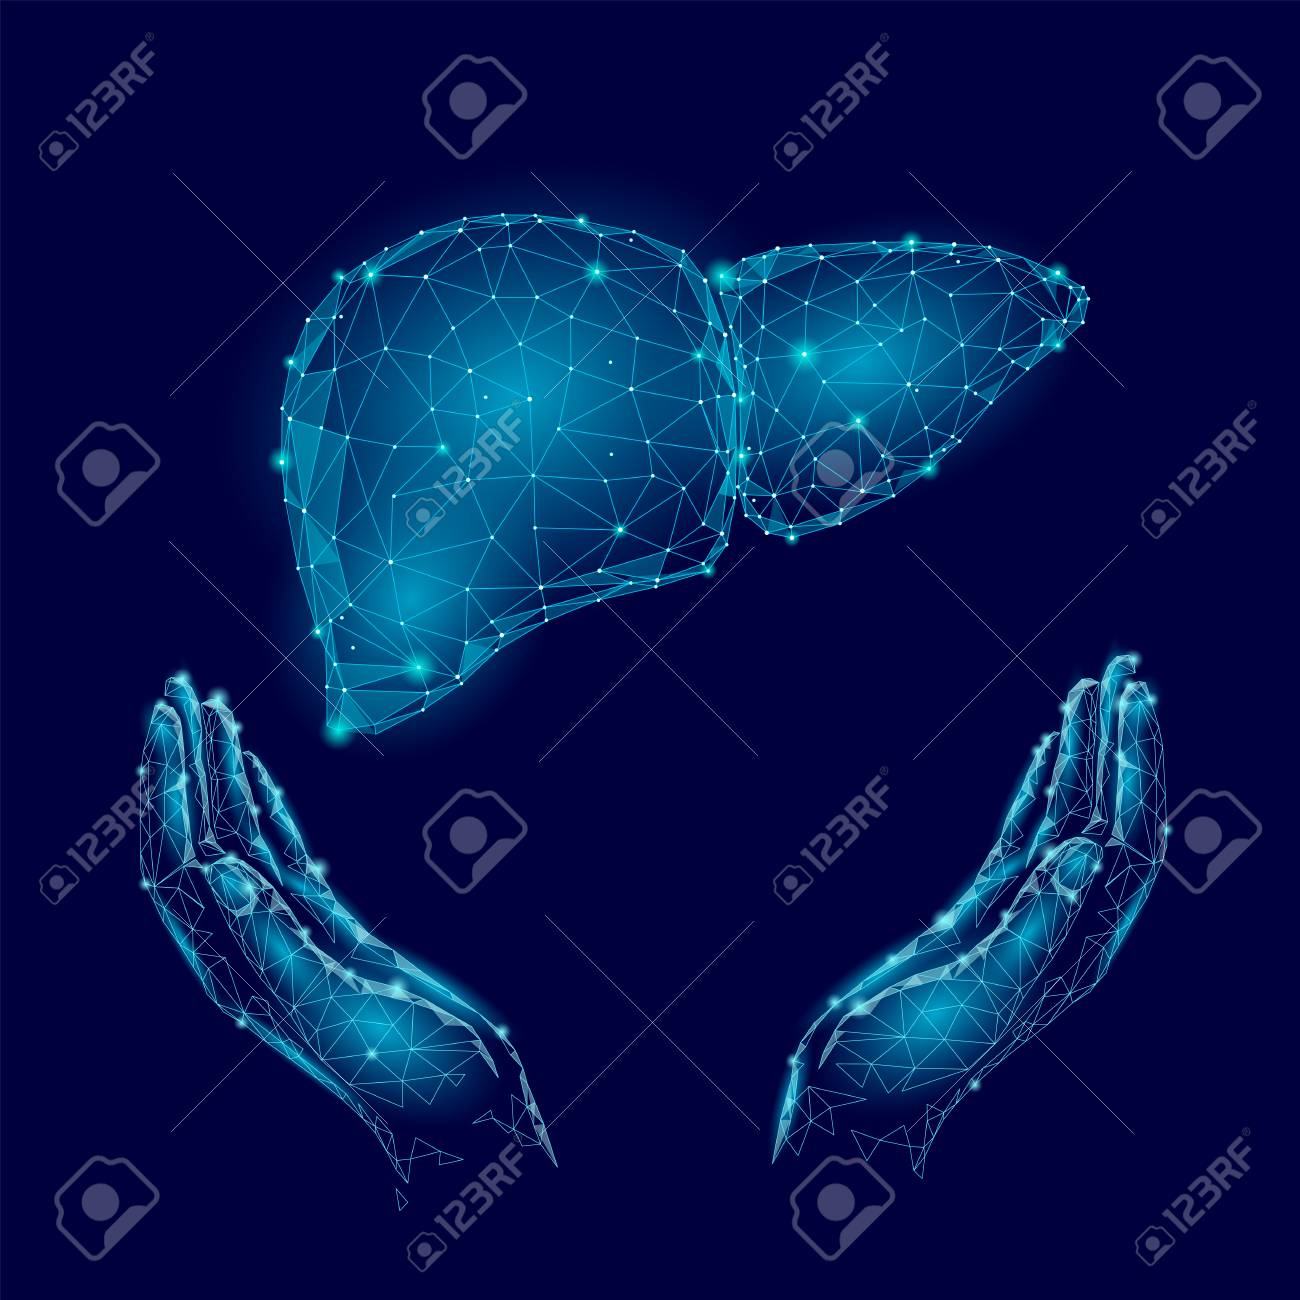 World Hepatitis Day awareness with human hands and liver in blue background - 97047929